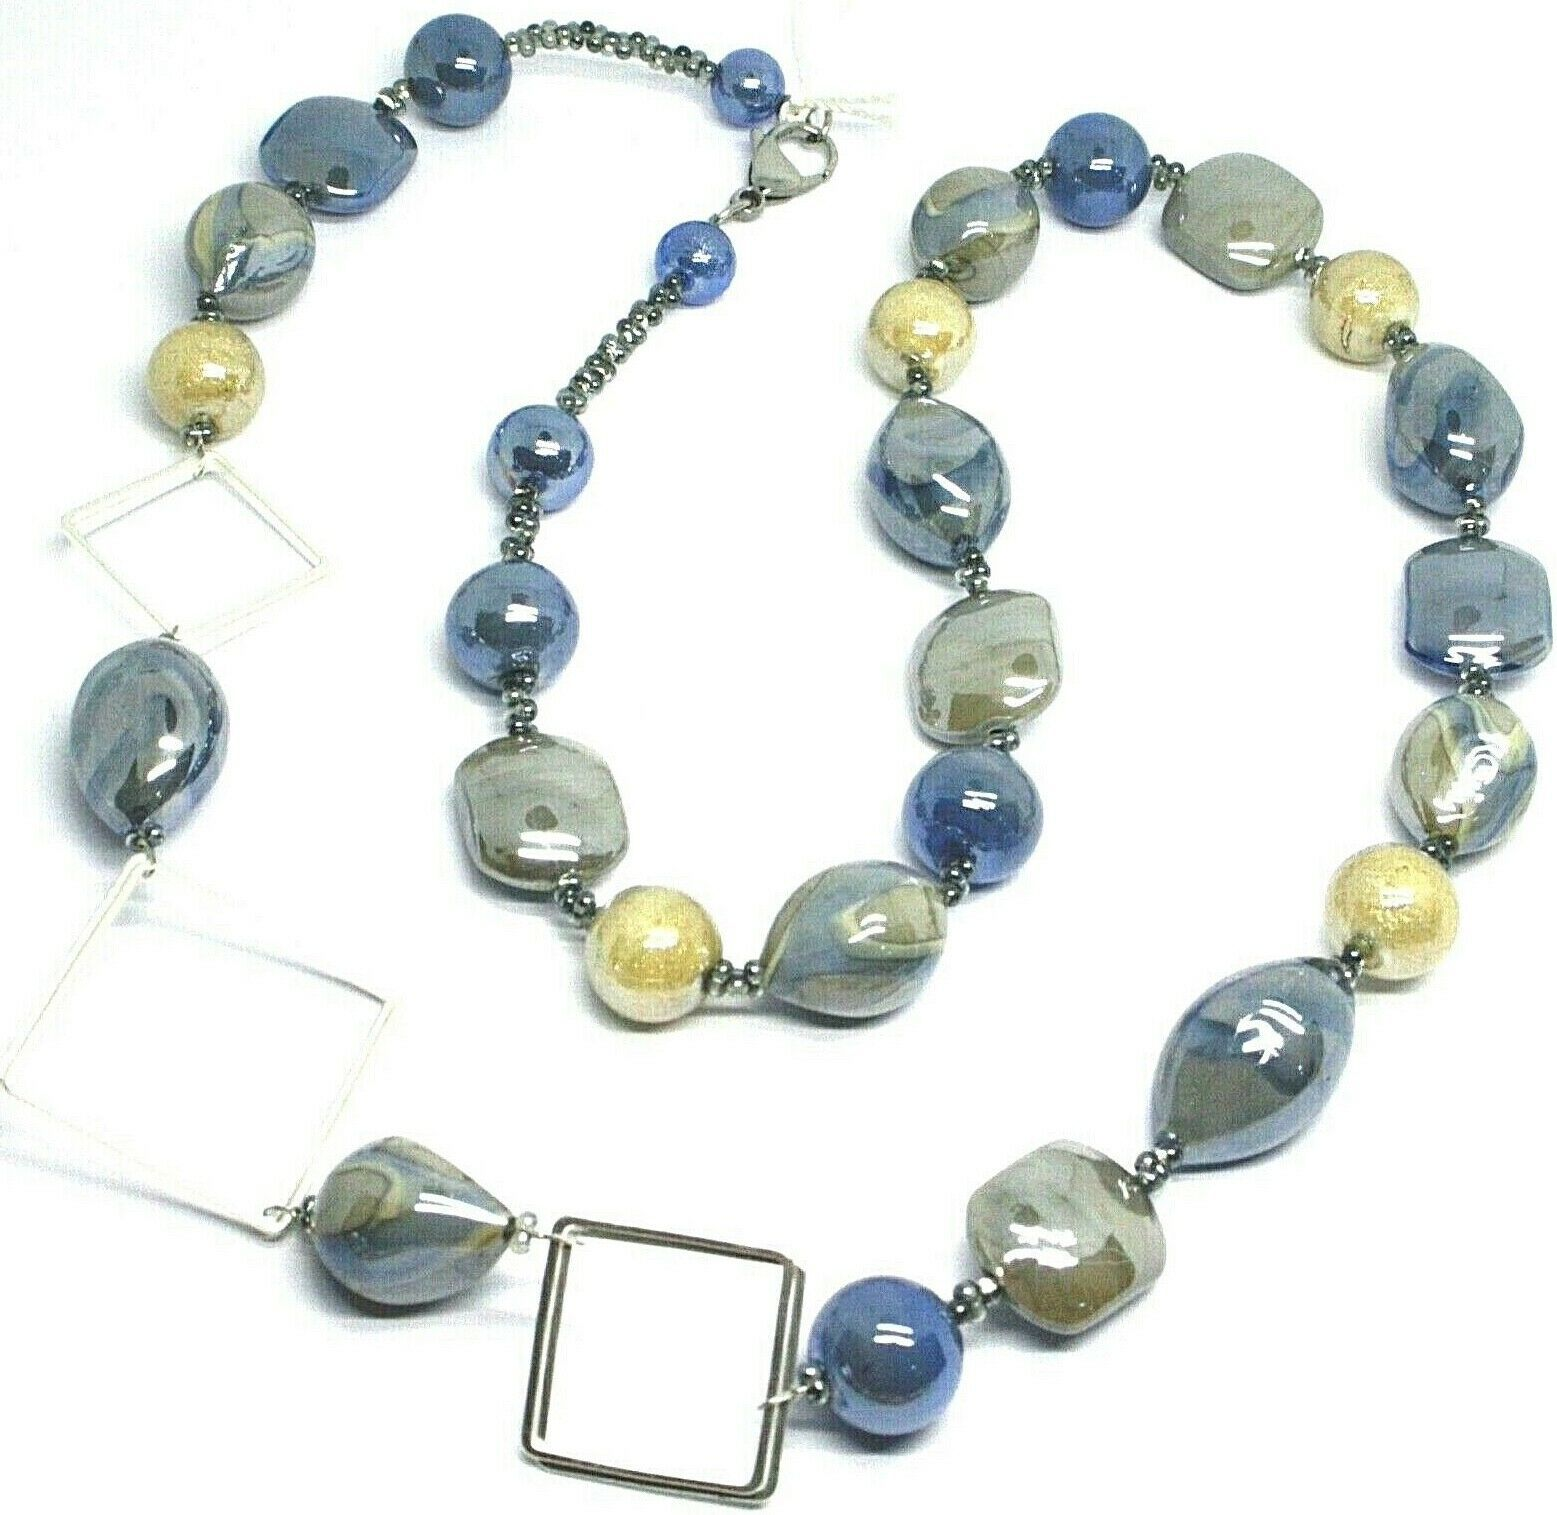 NECKLACE BLUE GRAY ROUNDED DROP, SPHERE, EXAGON MURANO GLASS SQUARE, 80cm LONG